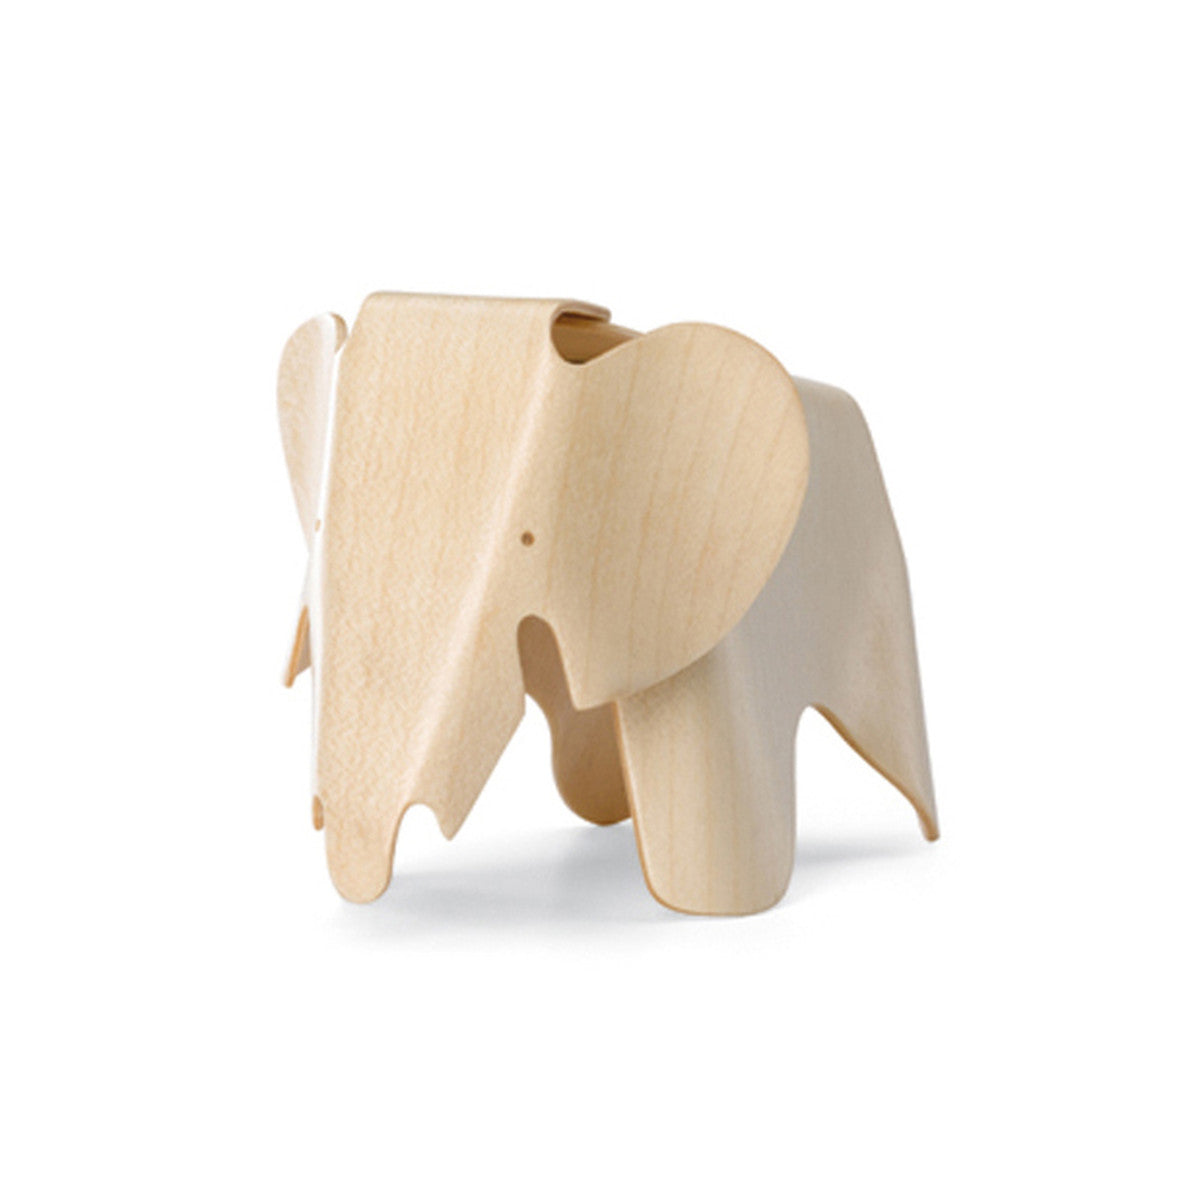 Eames elephant Miniture by Vitra